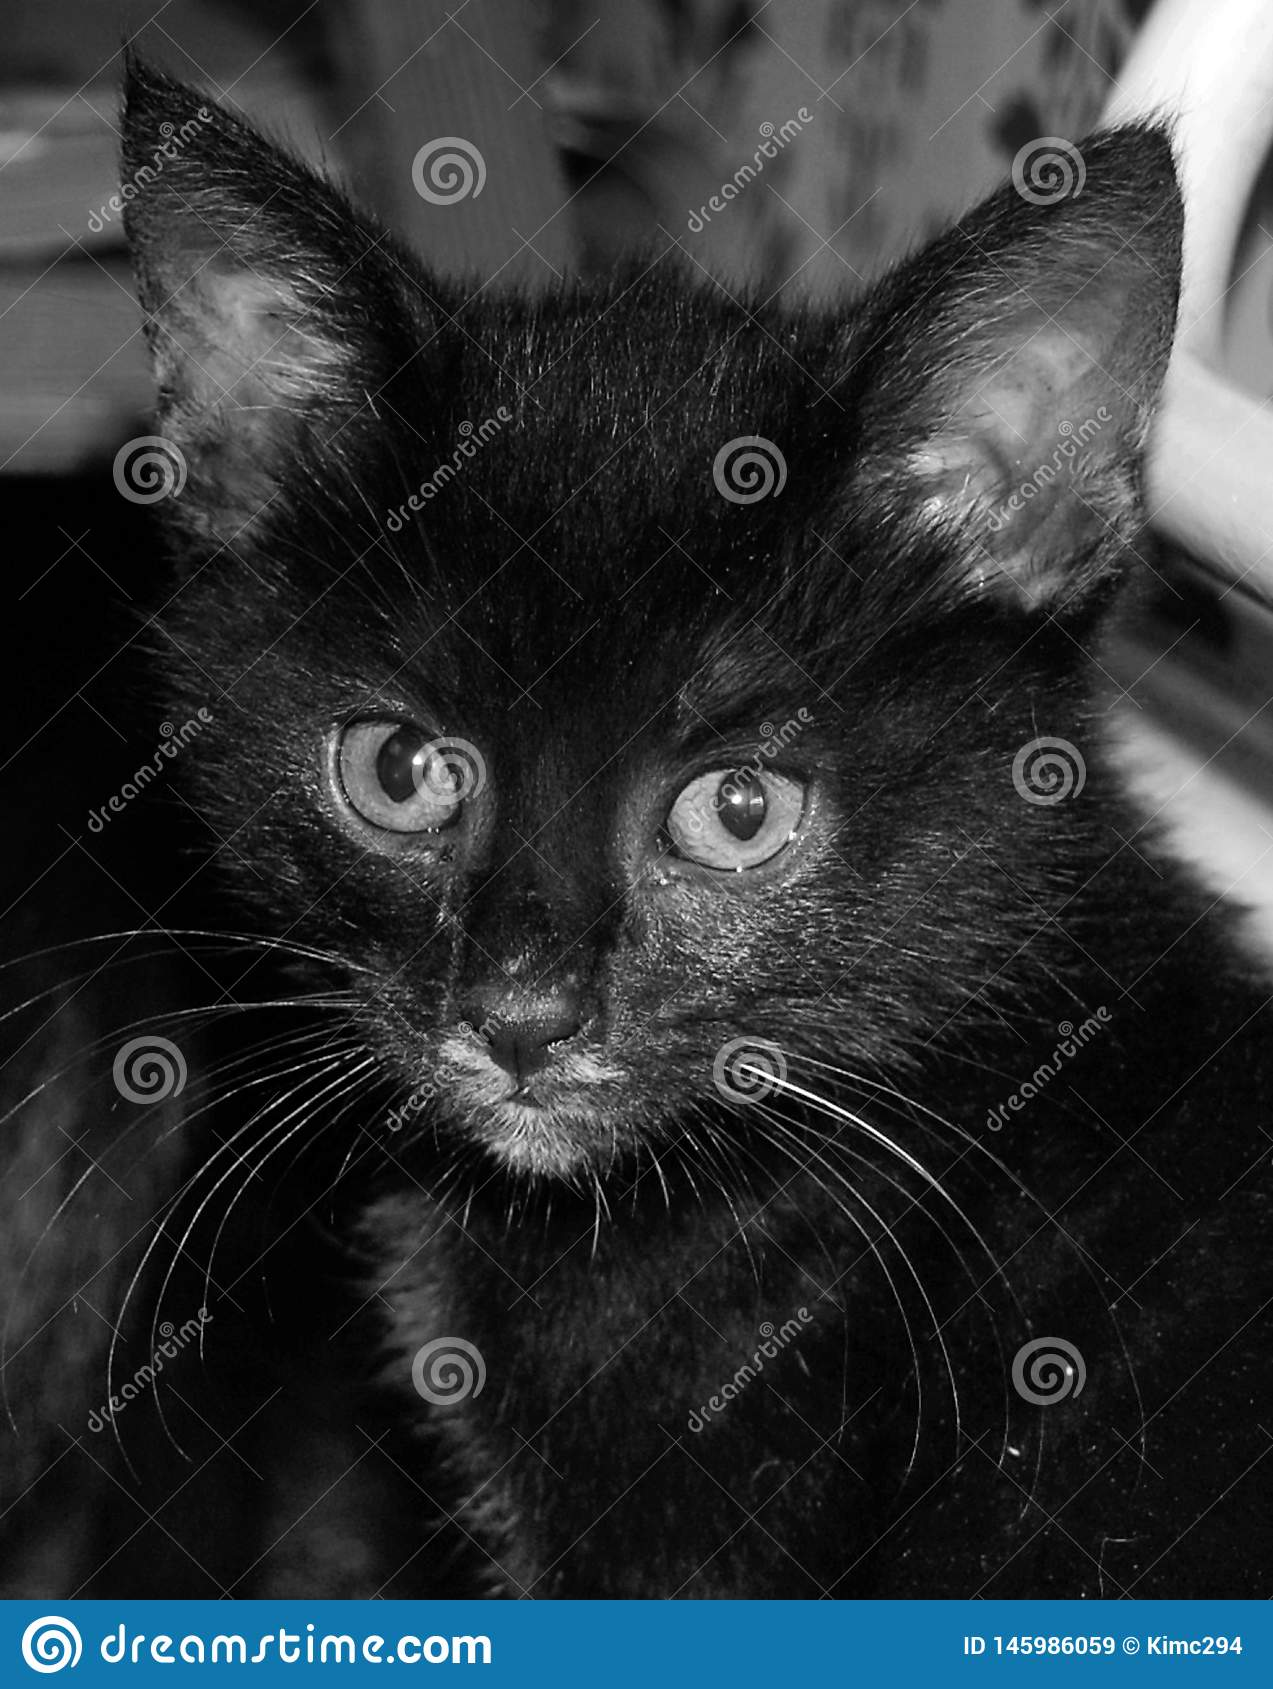 A close up portrait in black and white of a tiny black kitten